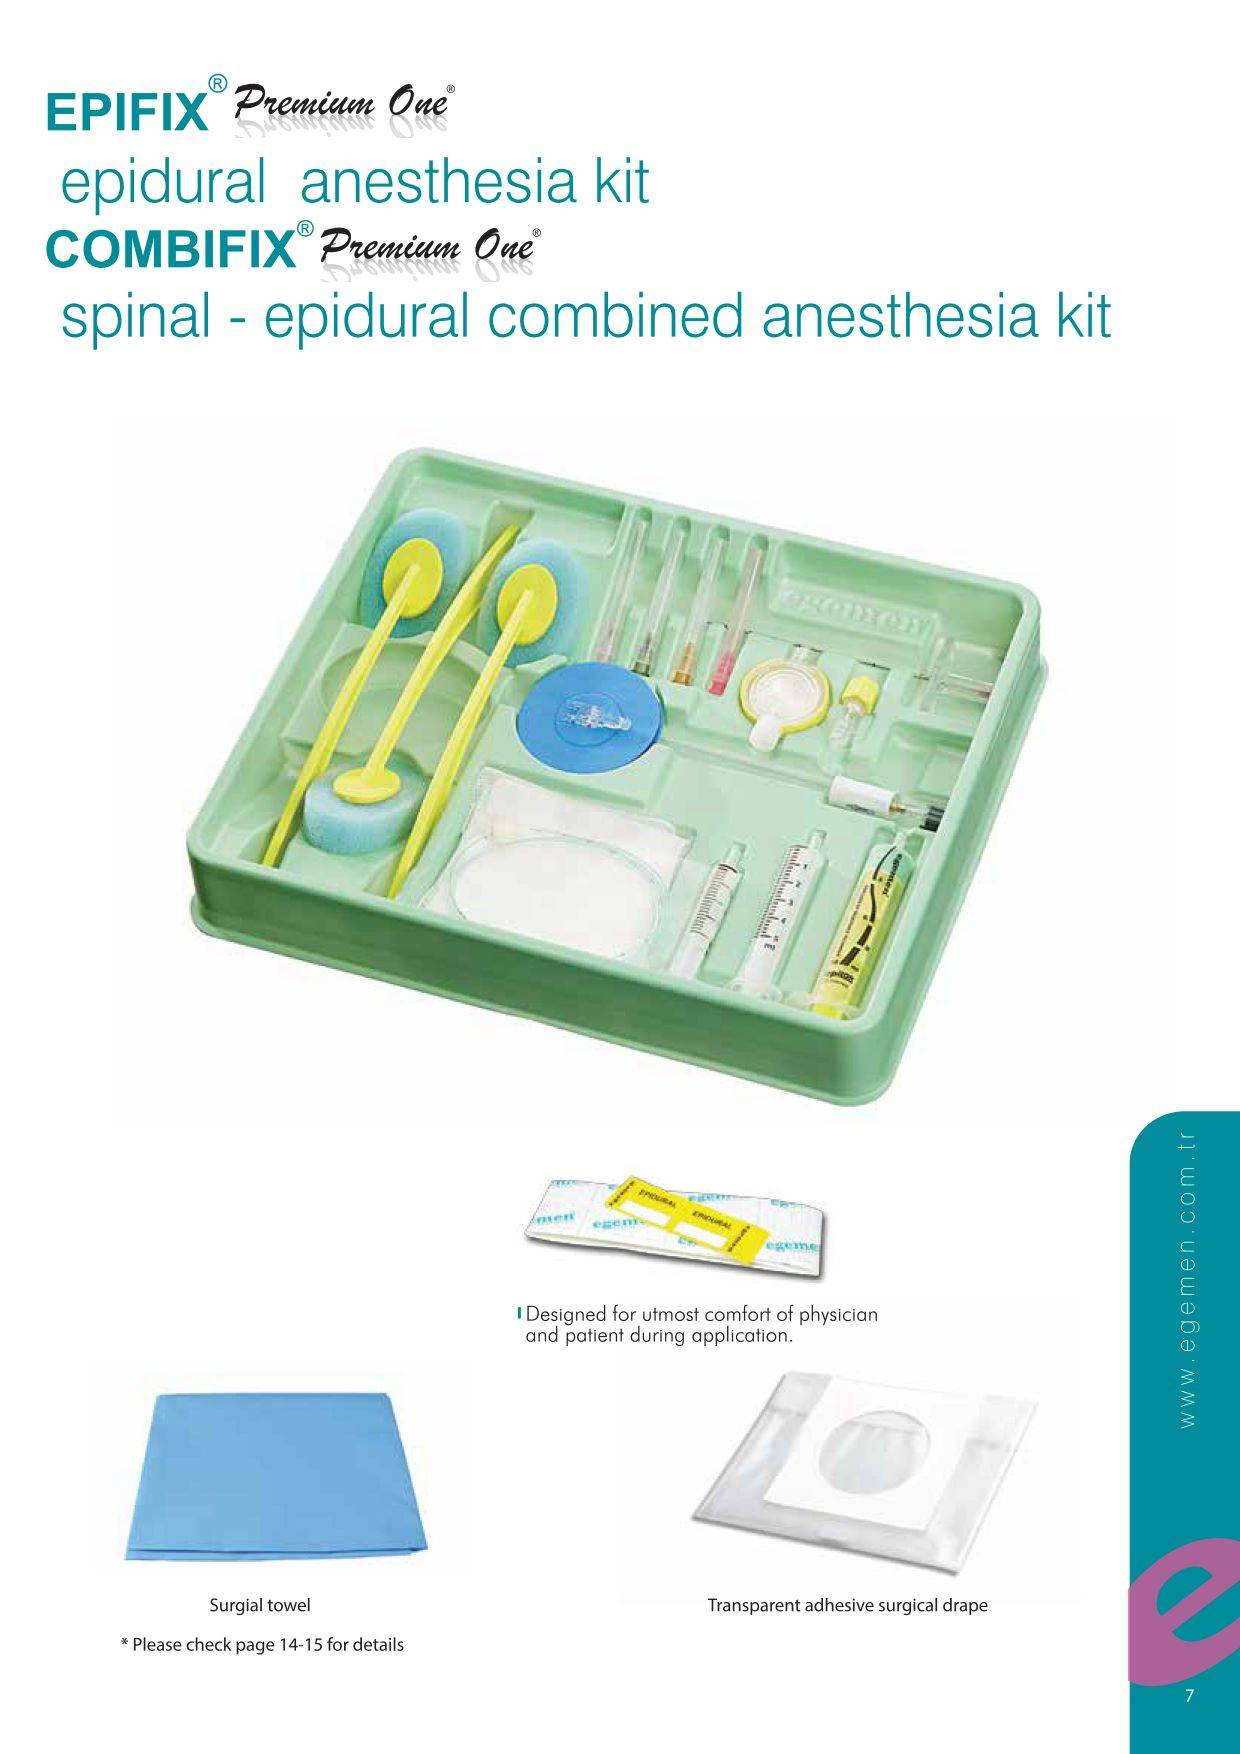 Combifix Premium One Spinal-Epidural Combined Anesthesia Kit